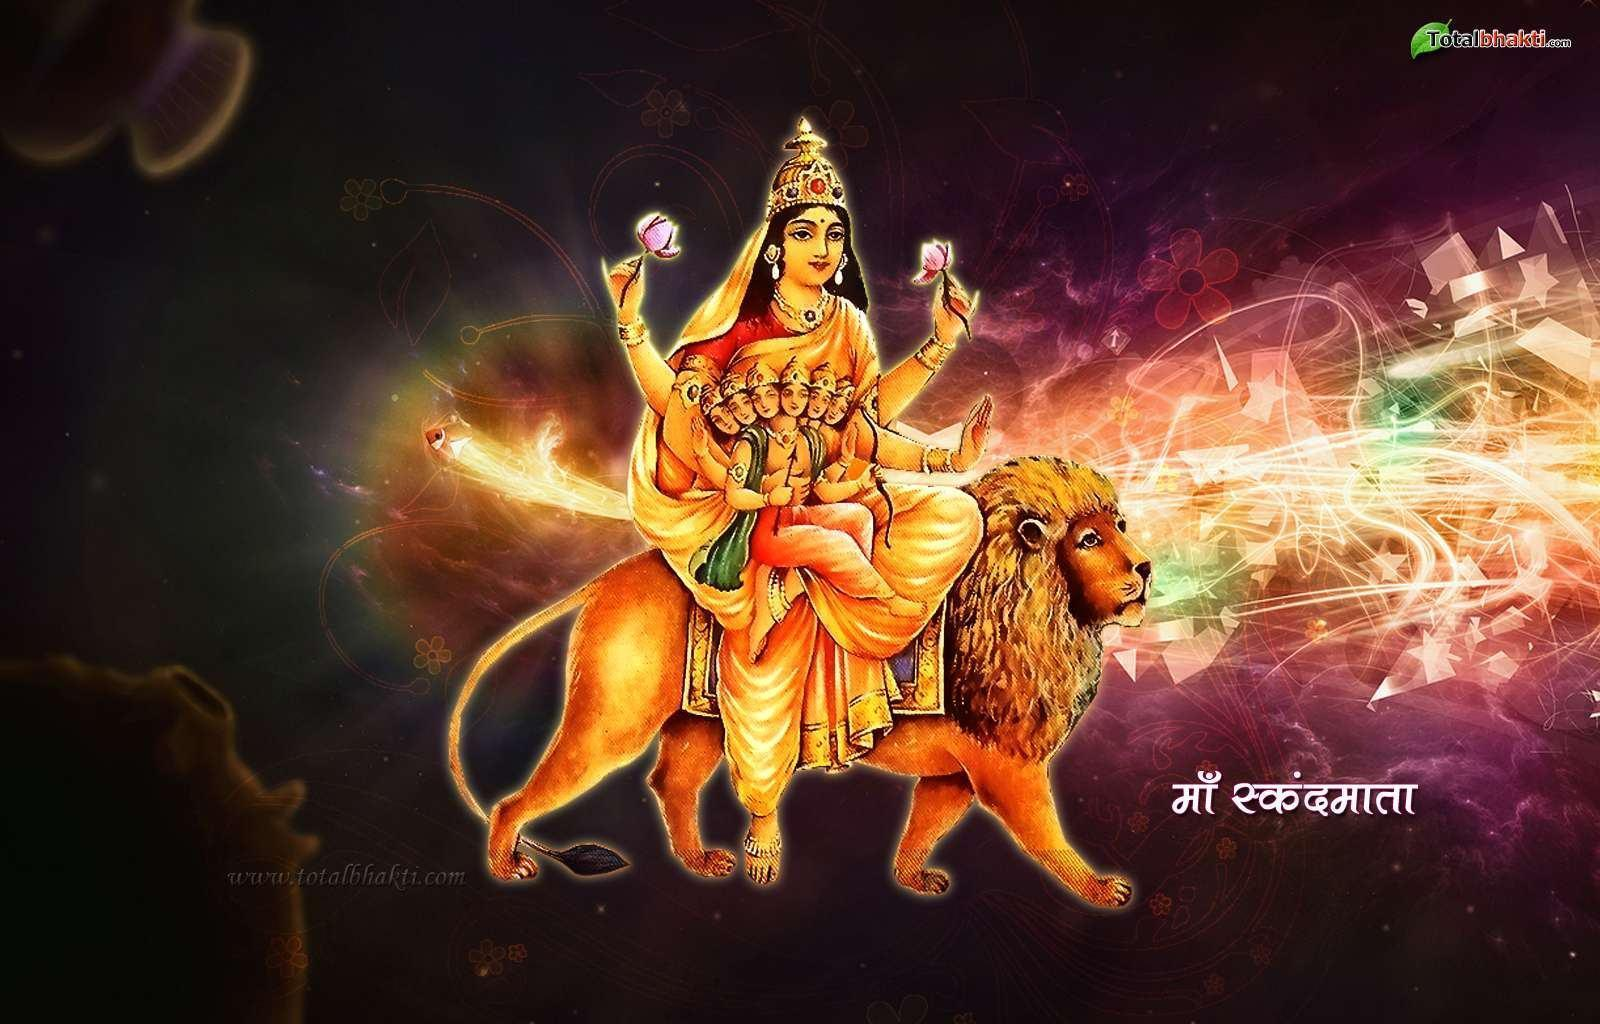 Durga Hindu Skandmata Pink HD God Image,Wallpapers & Backgrounds